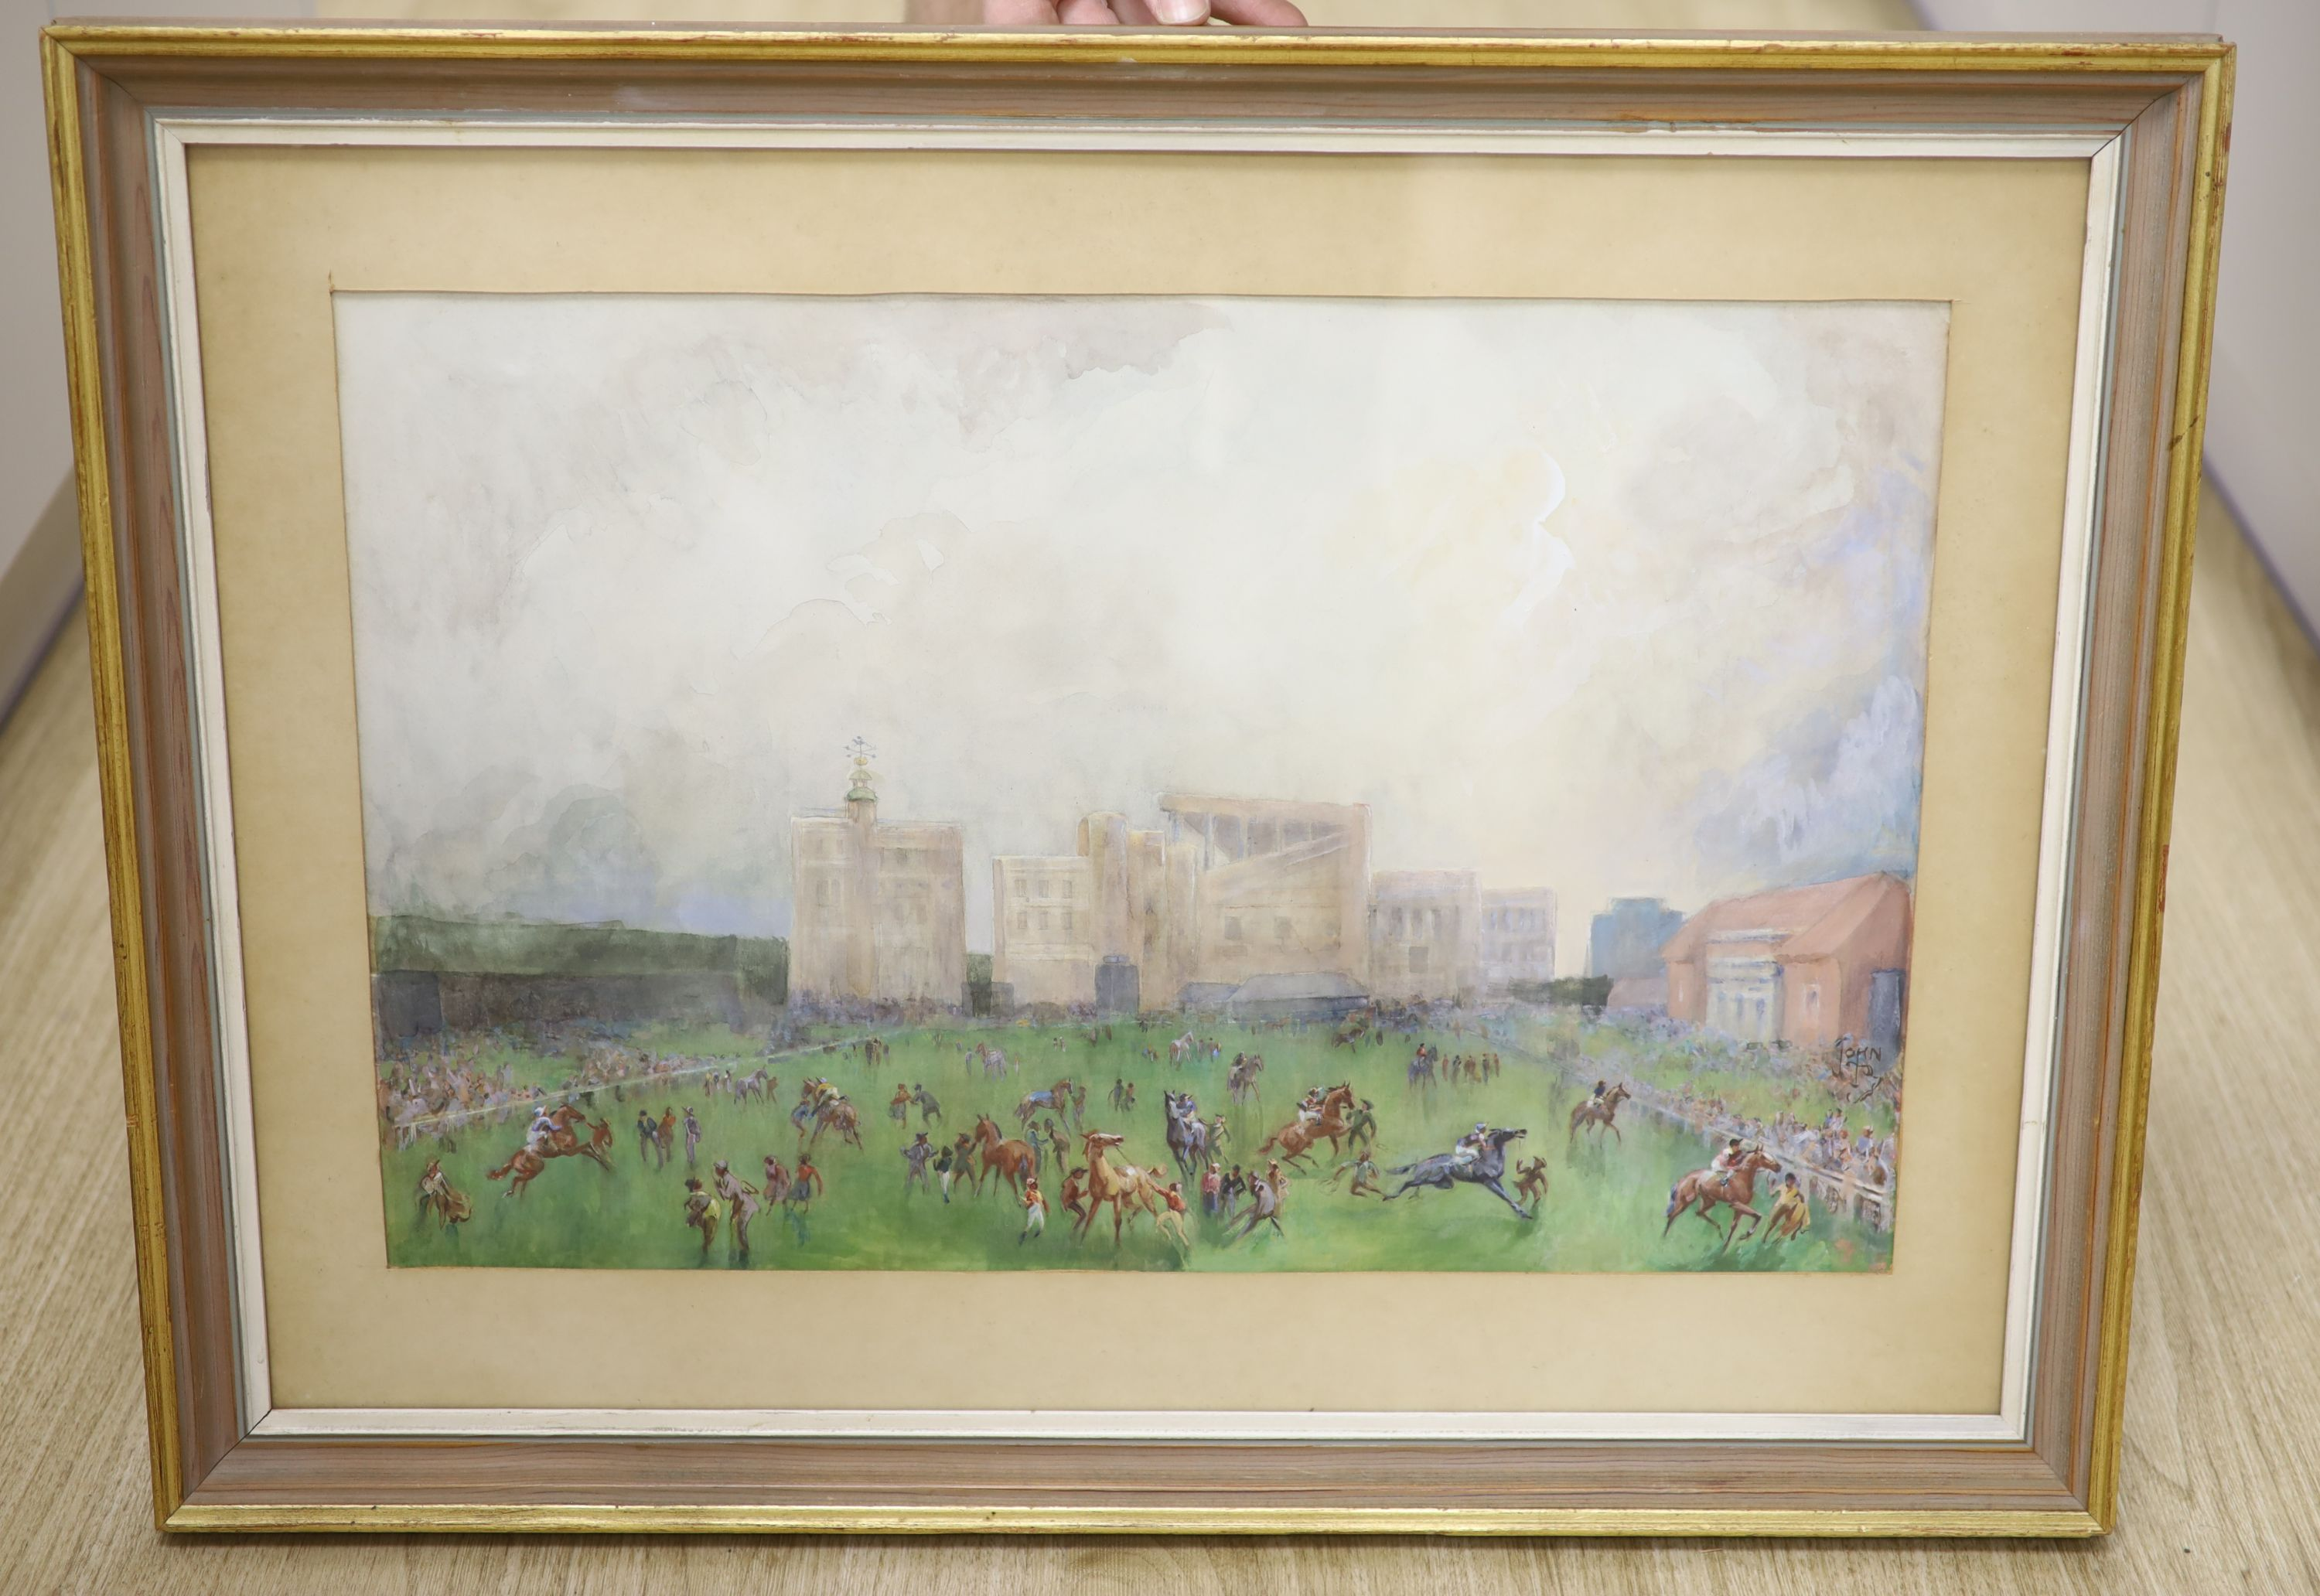 John Beer (1883-1915), watercolour, Newmarket, signed, 35 x 54cm - Image 3 of 3